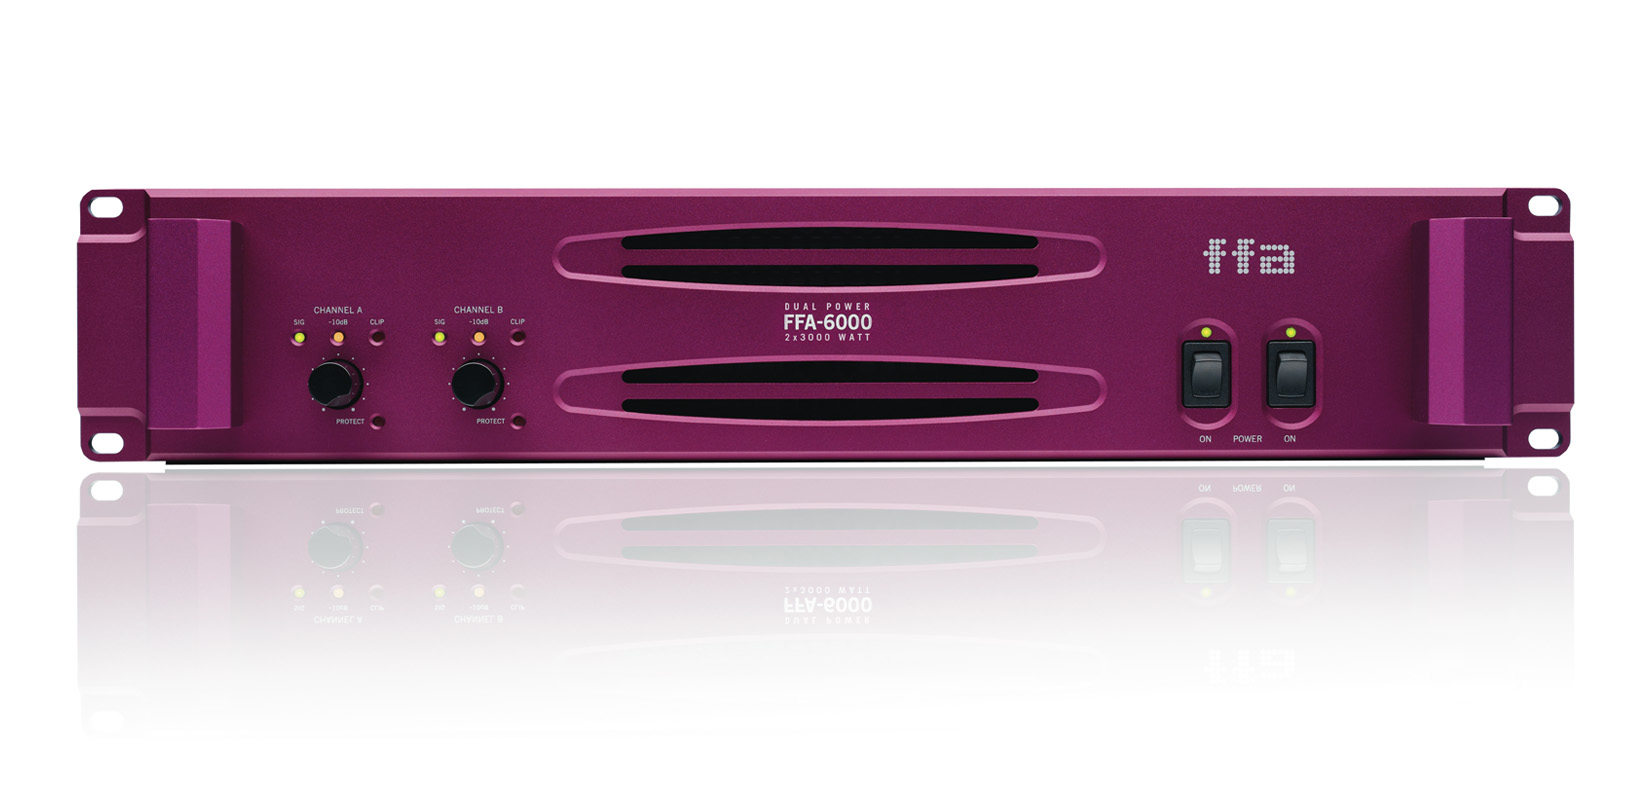 Ffa 6000 Dual Power 2 X 3000w Stereo Amplifier Circuit Product Image Mono Professional Audio Amplifiers